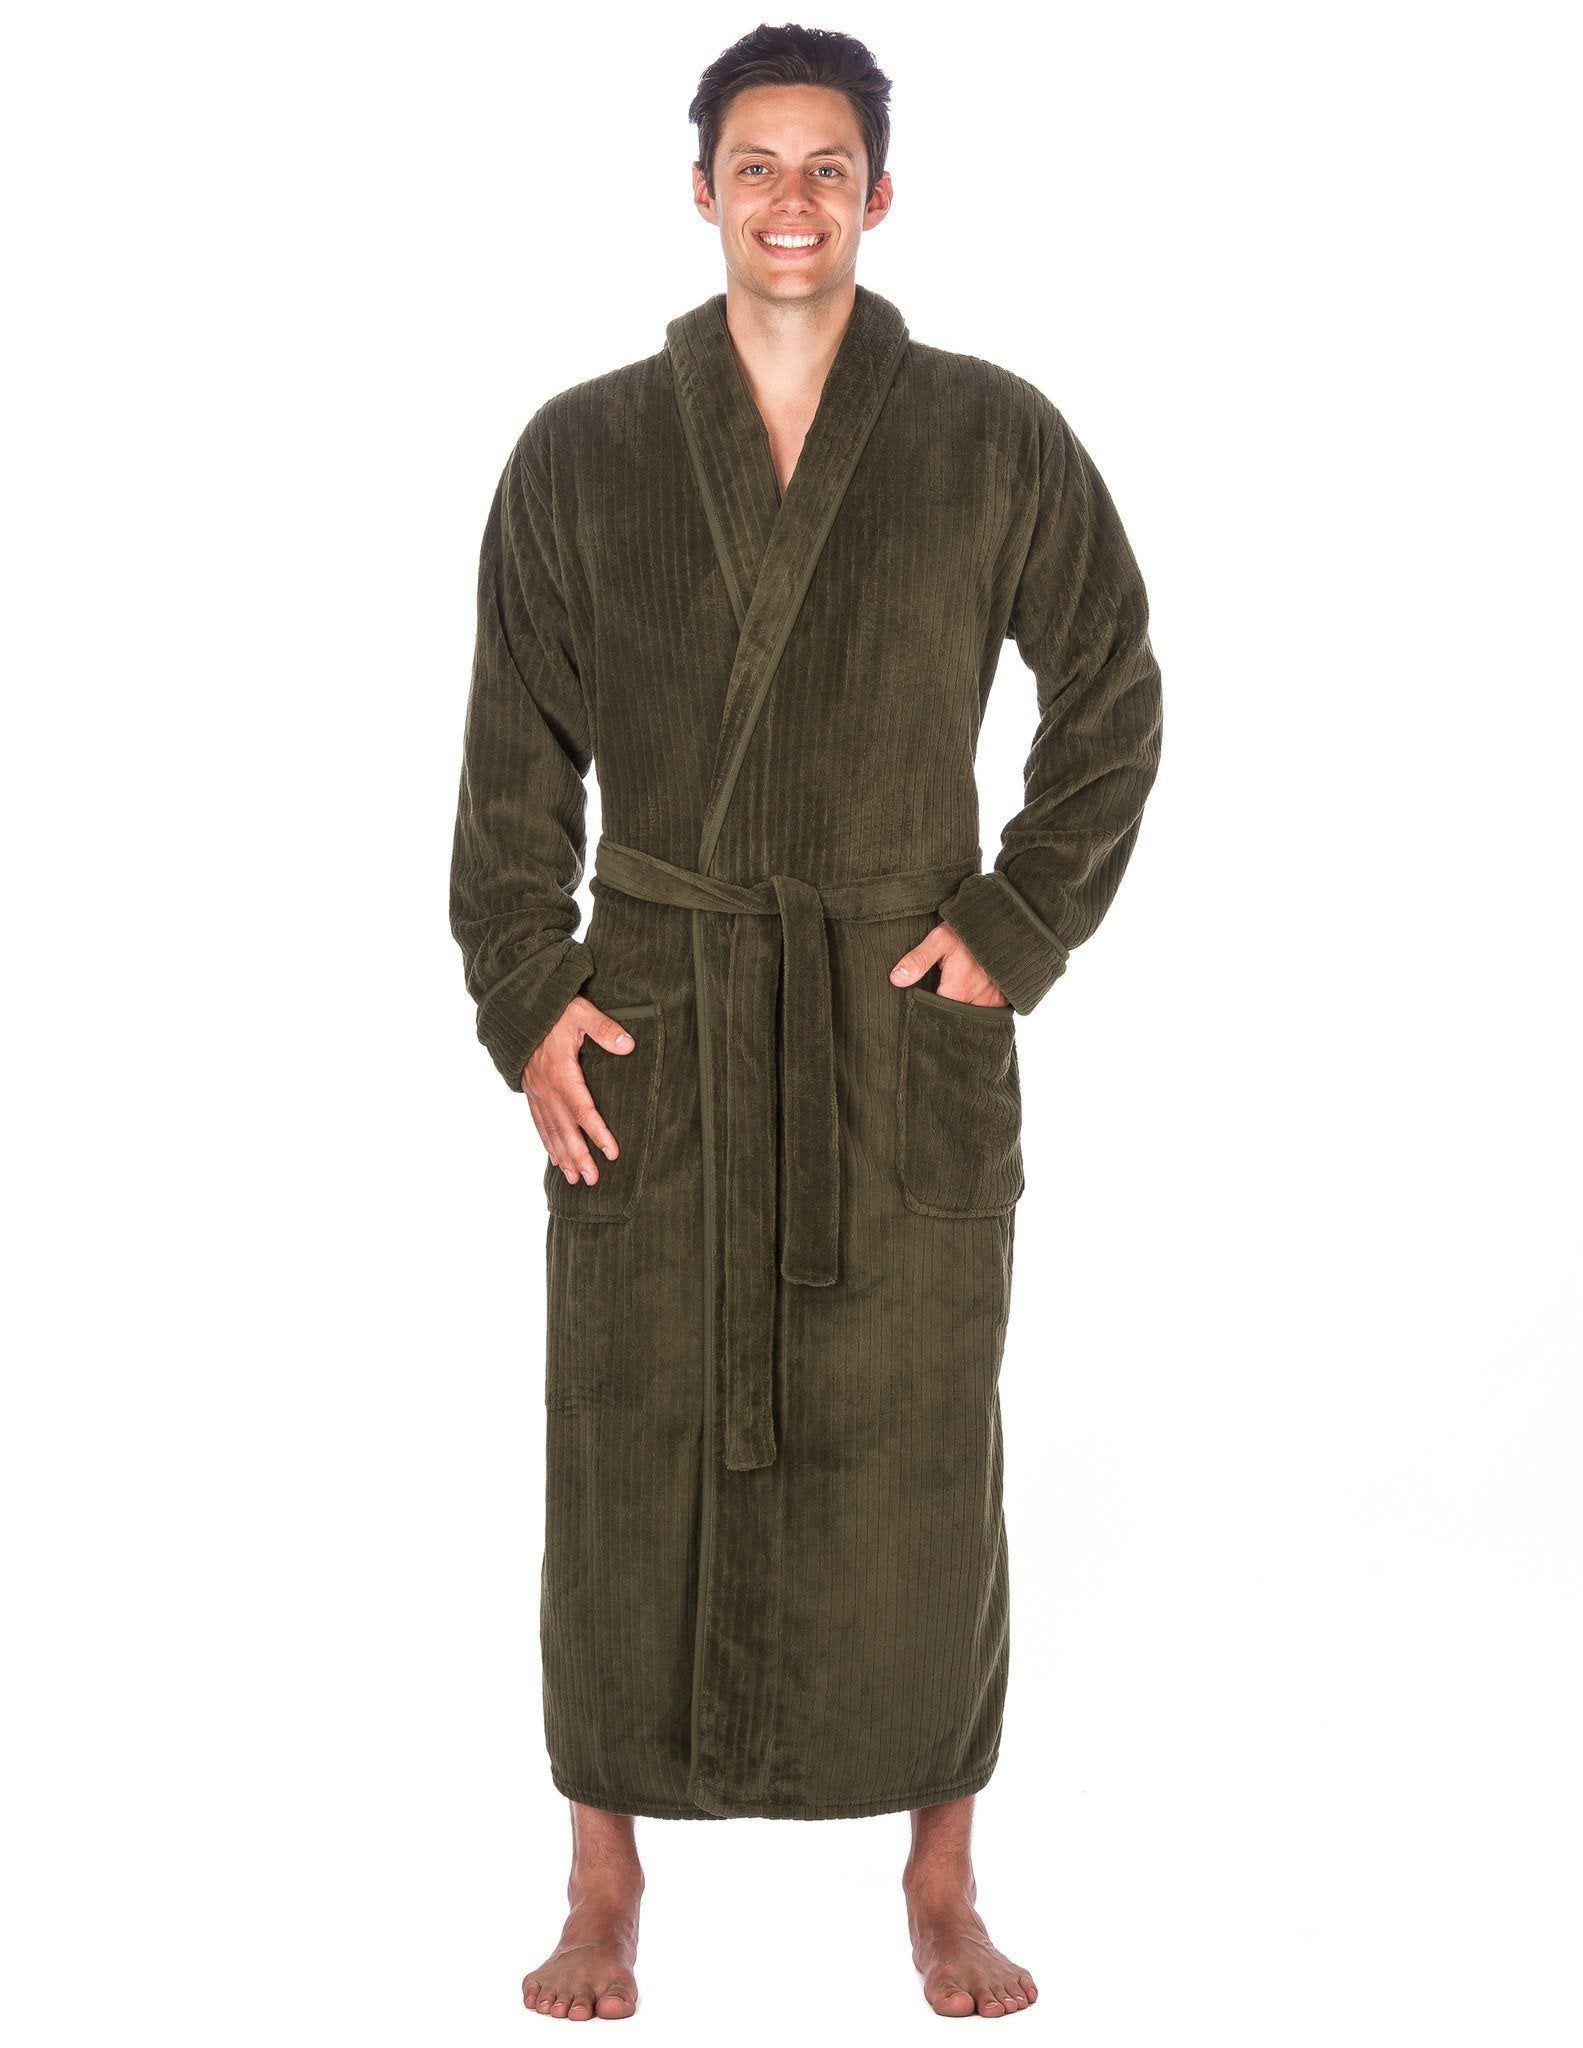 Men's Premium Coral Fleece Long Hooded Plush Spa/Bath Robe - Olive